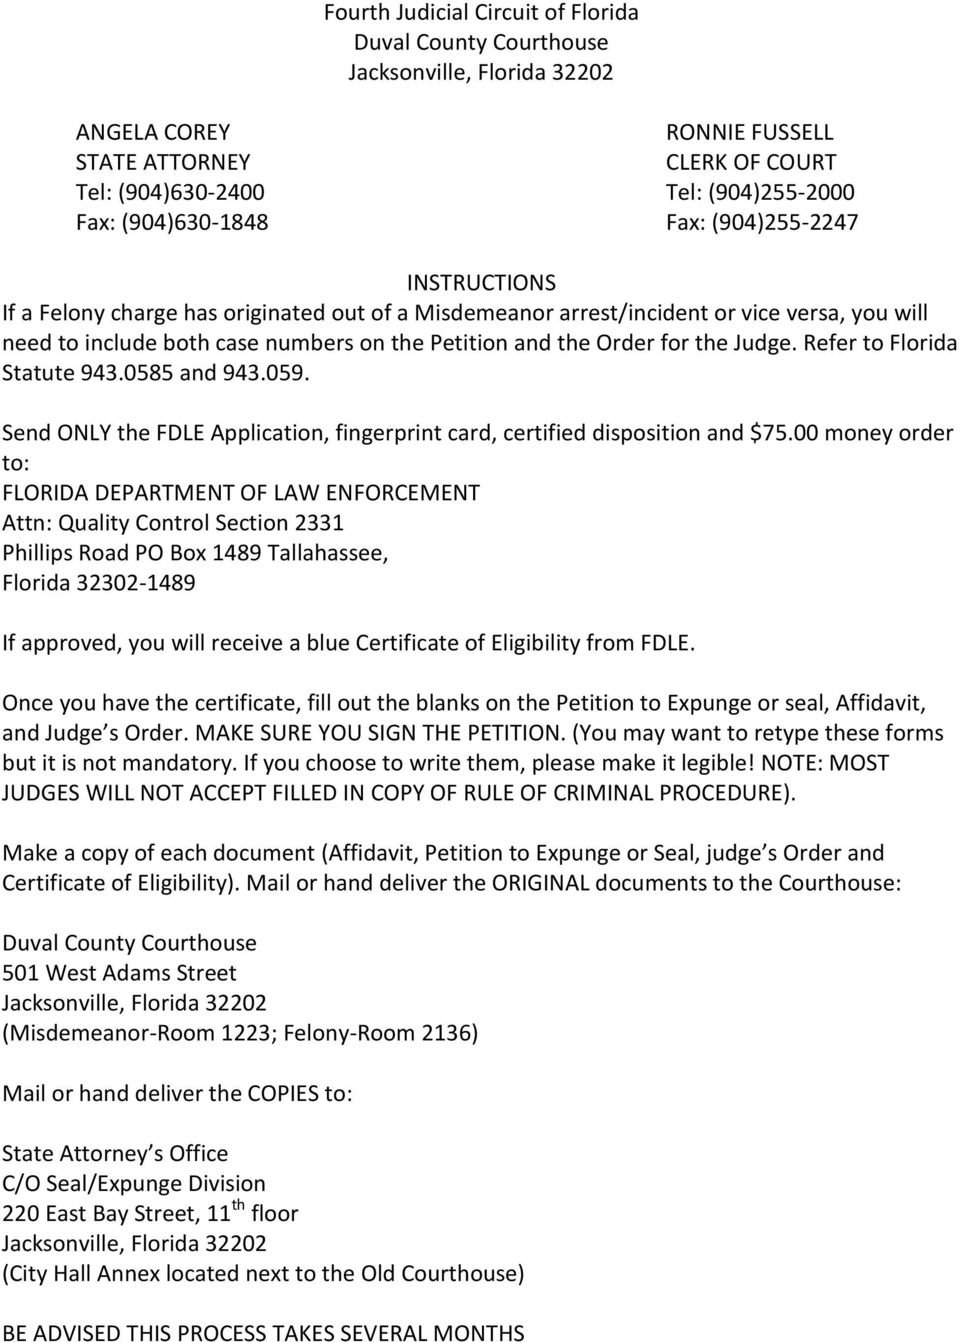 Order for the Judge. Refer to Florida Statute 943.0585 and 943.059. Send ONLY the FDLE Application, fingerprint card, certified disposition and $75.